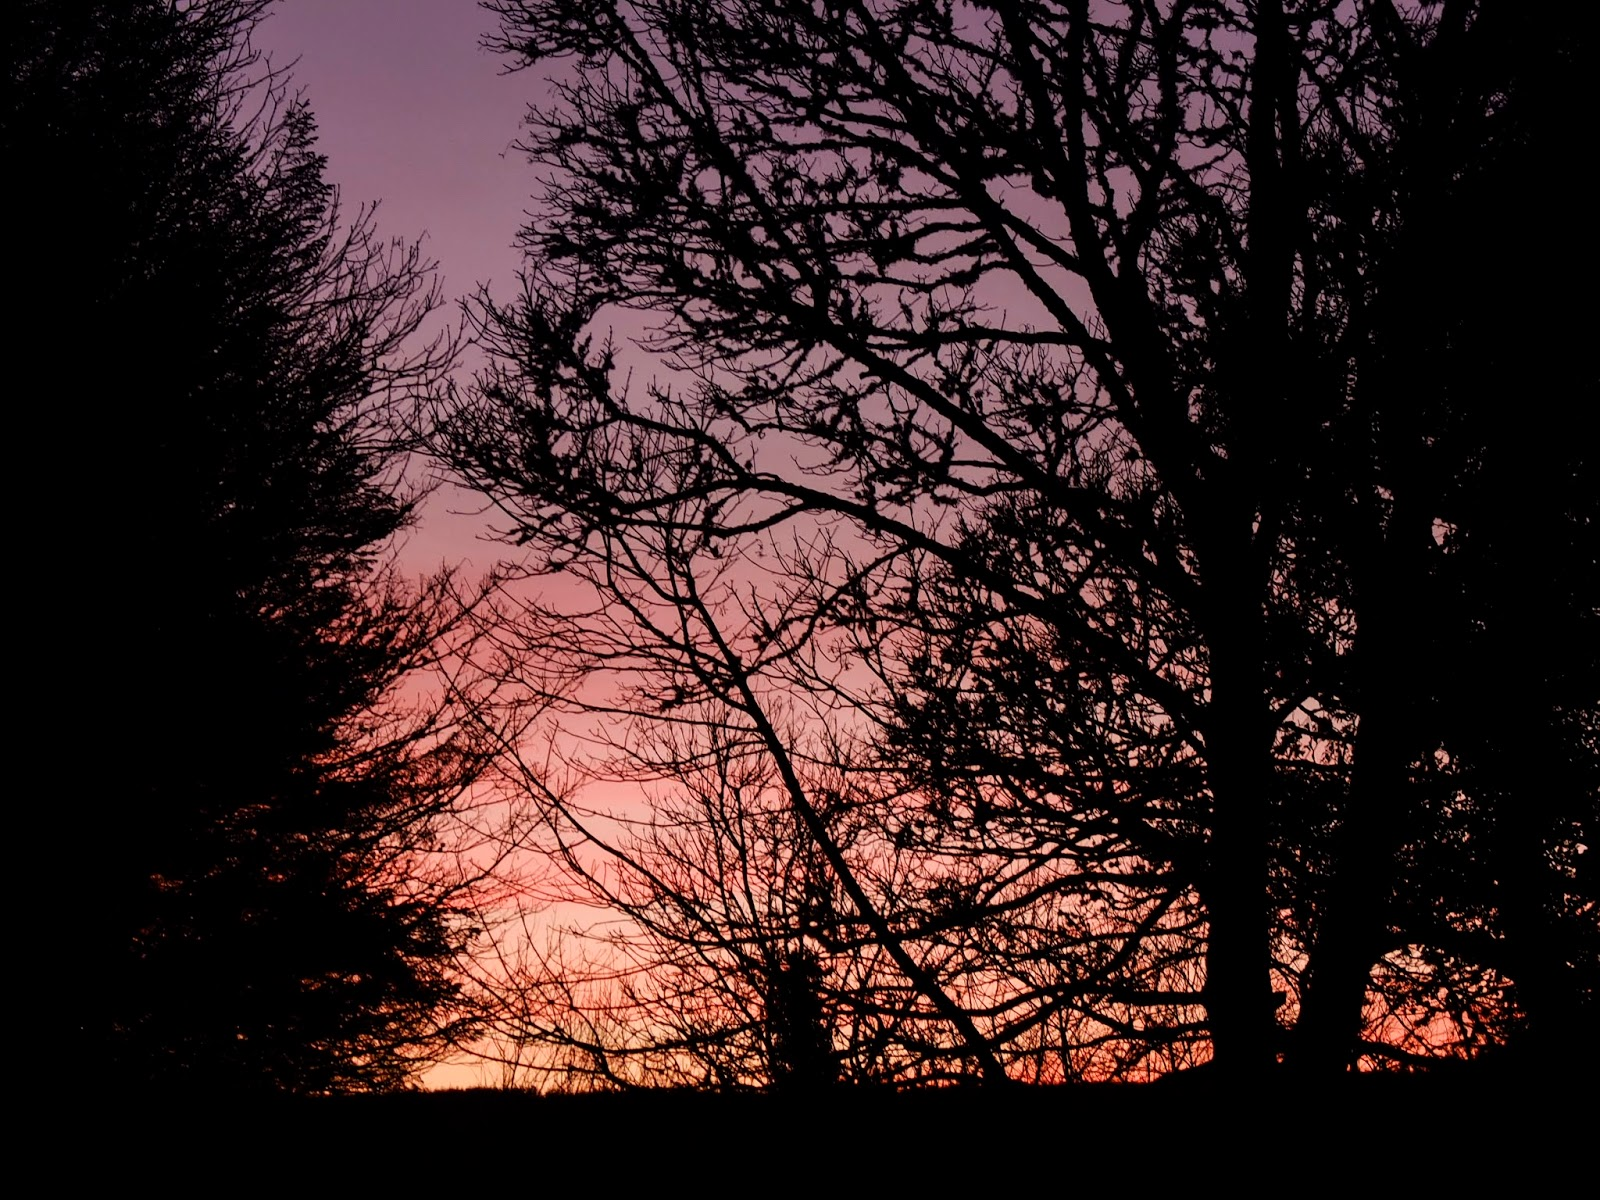 Purple to pink toned sky through bare tree branches.